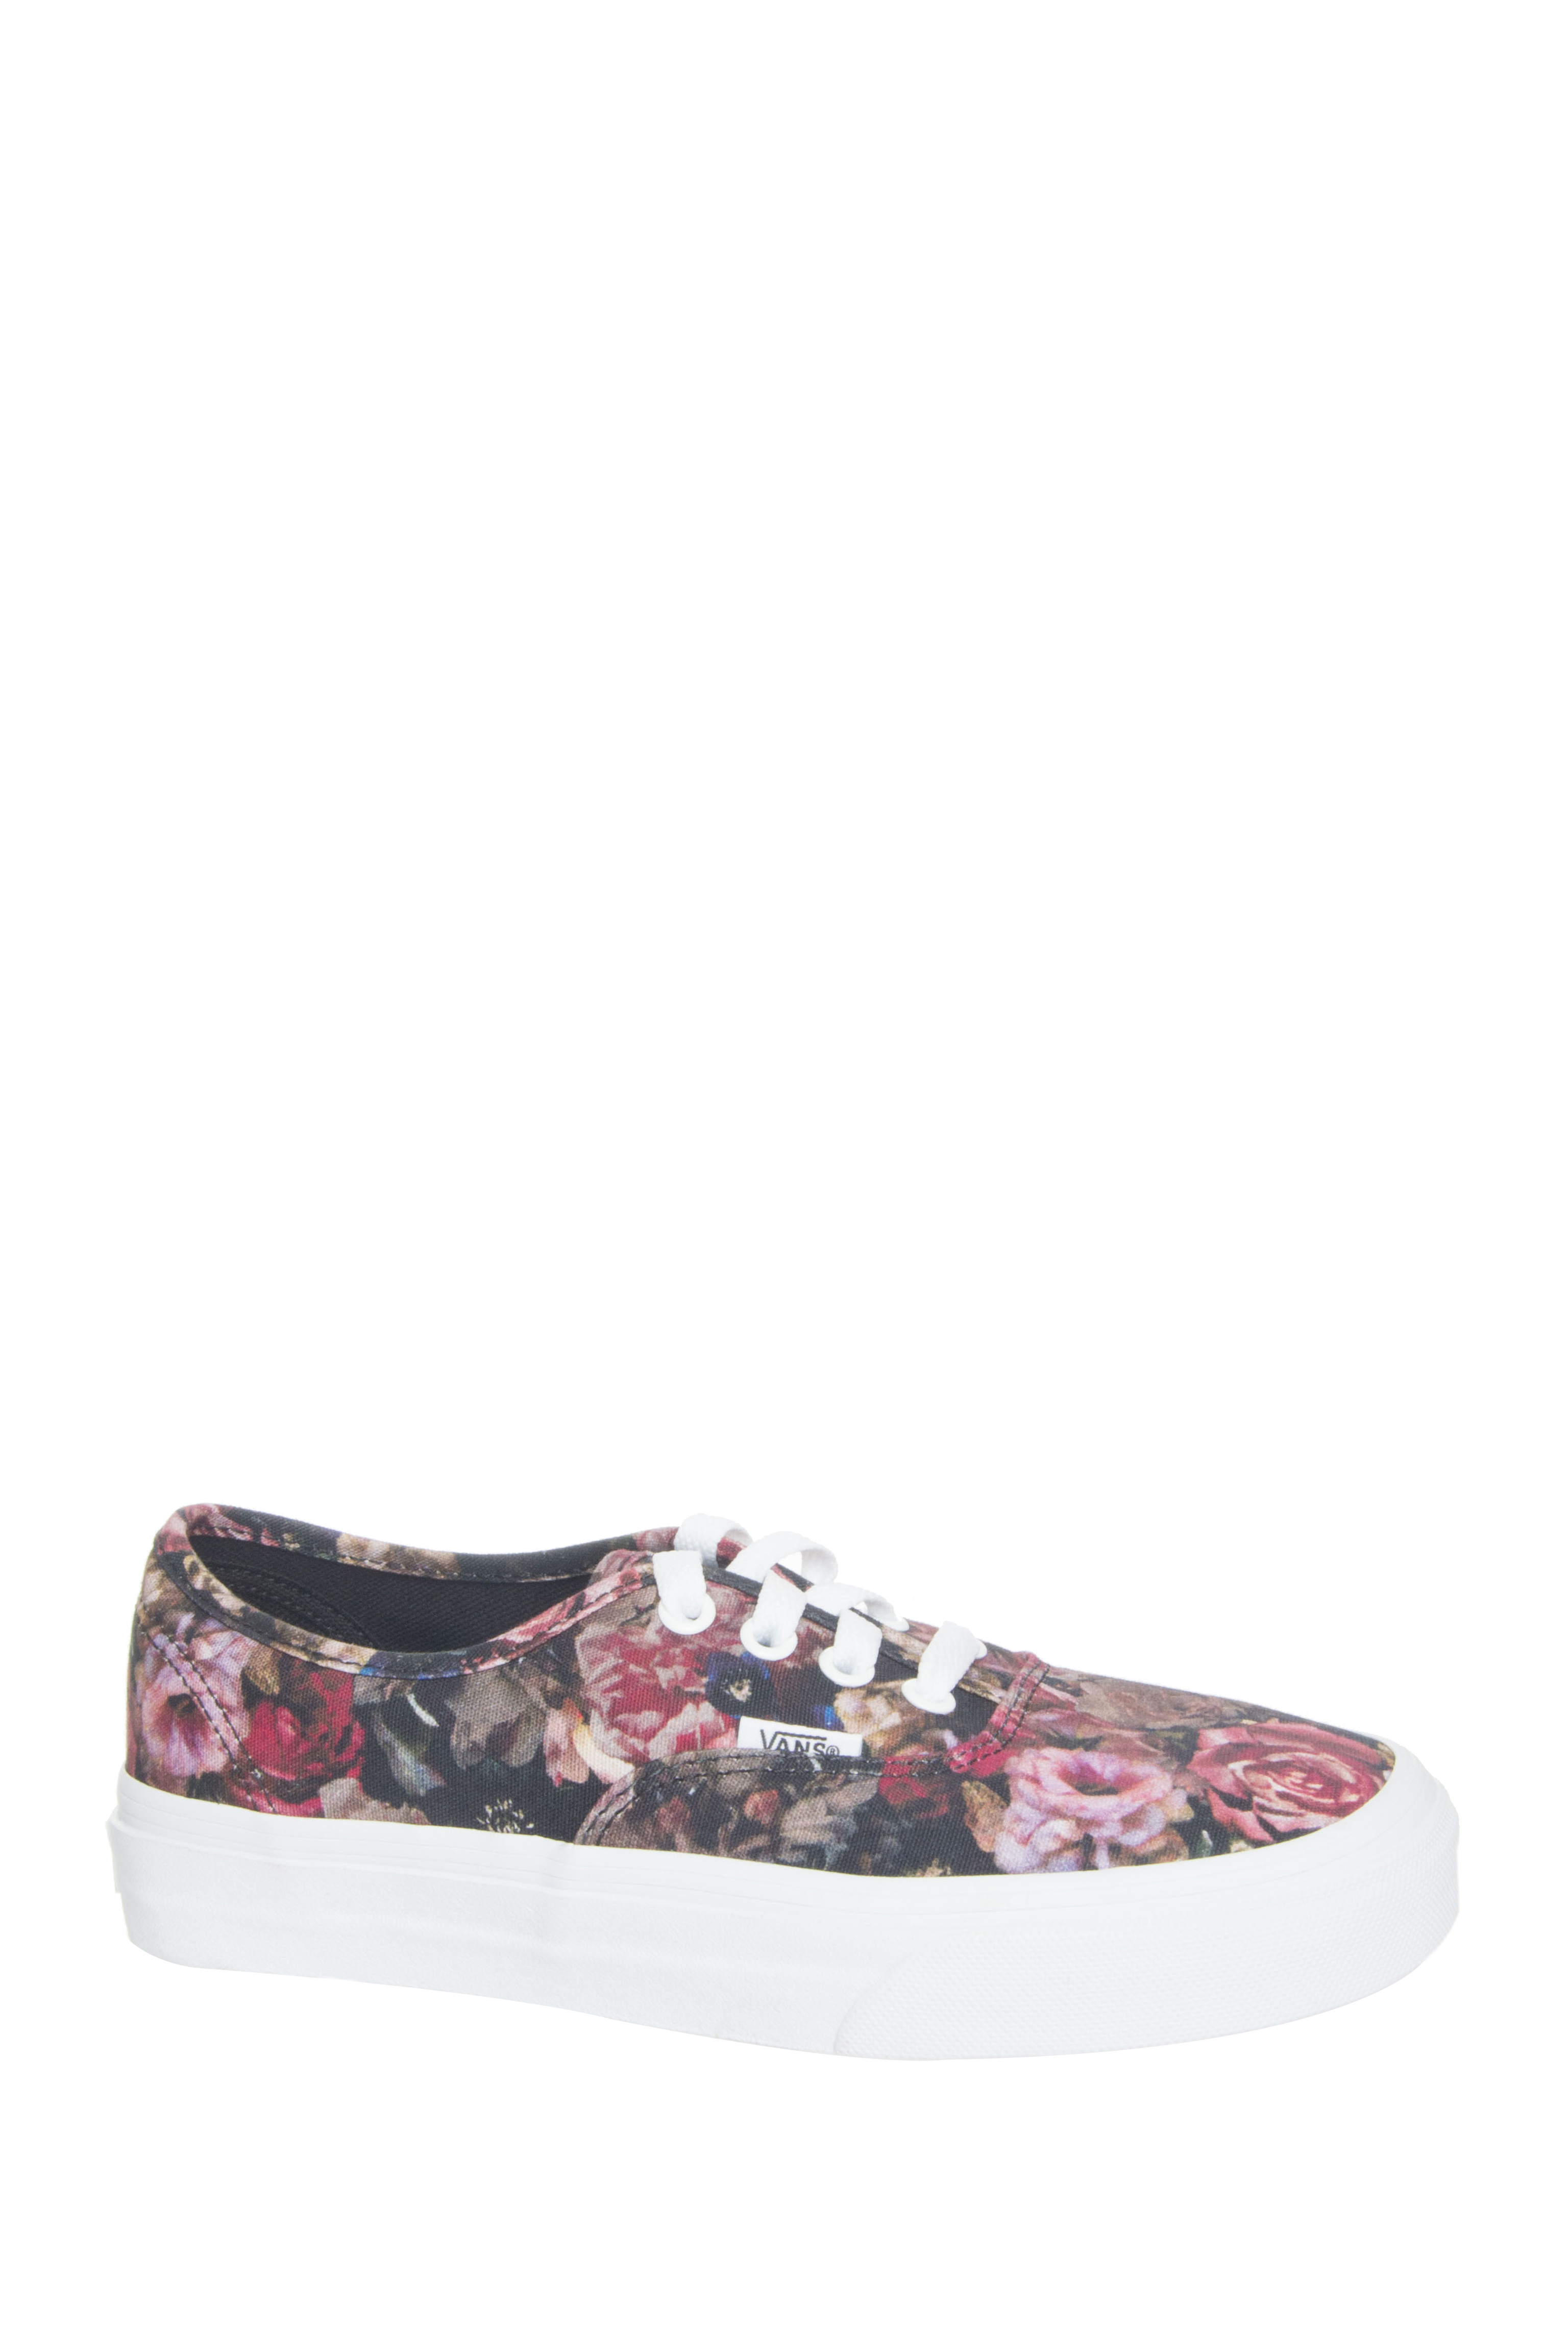 Vans Unisex Moody Floral Low Top Sneakers - Black